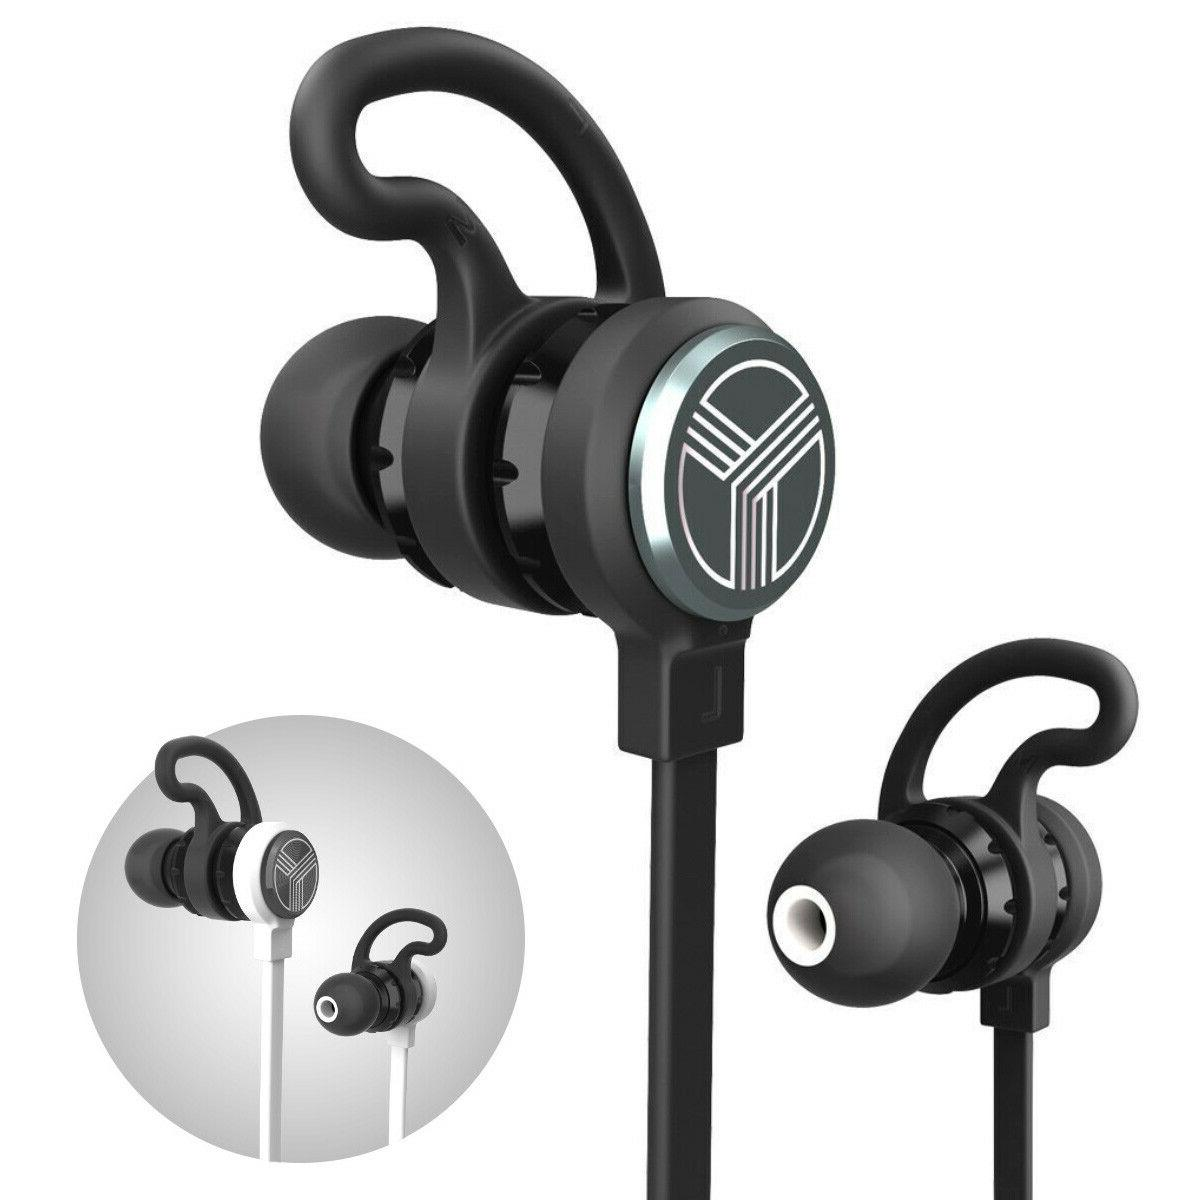 j1 bluetooth earbuds best noise cancelling wireless